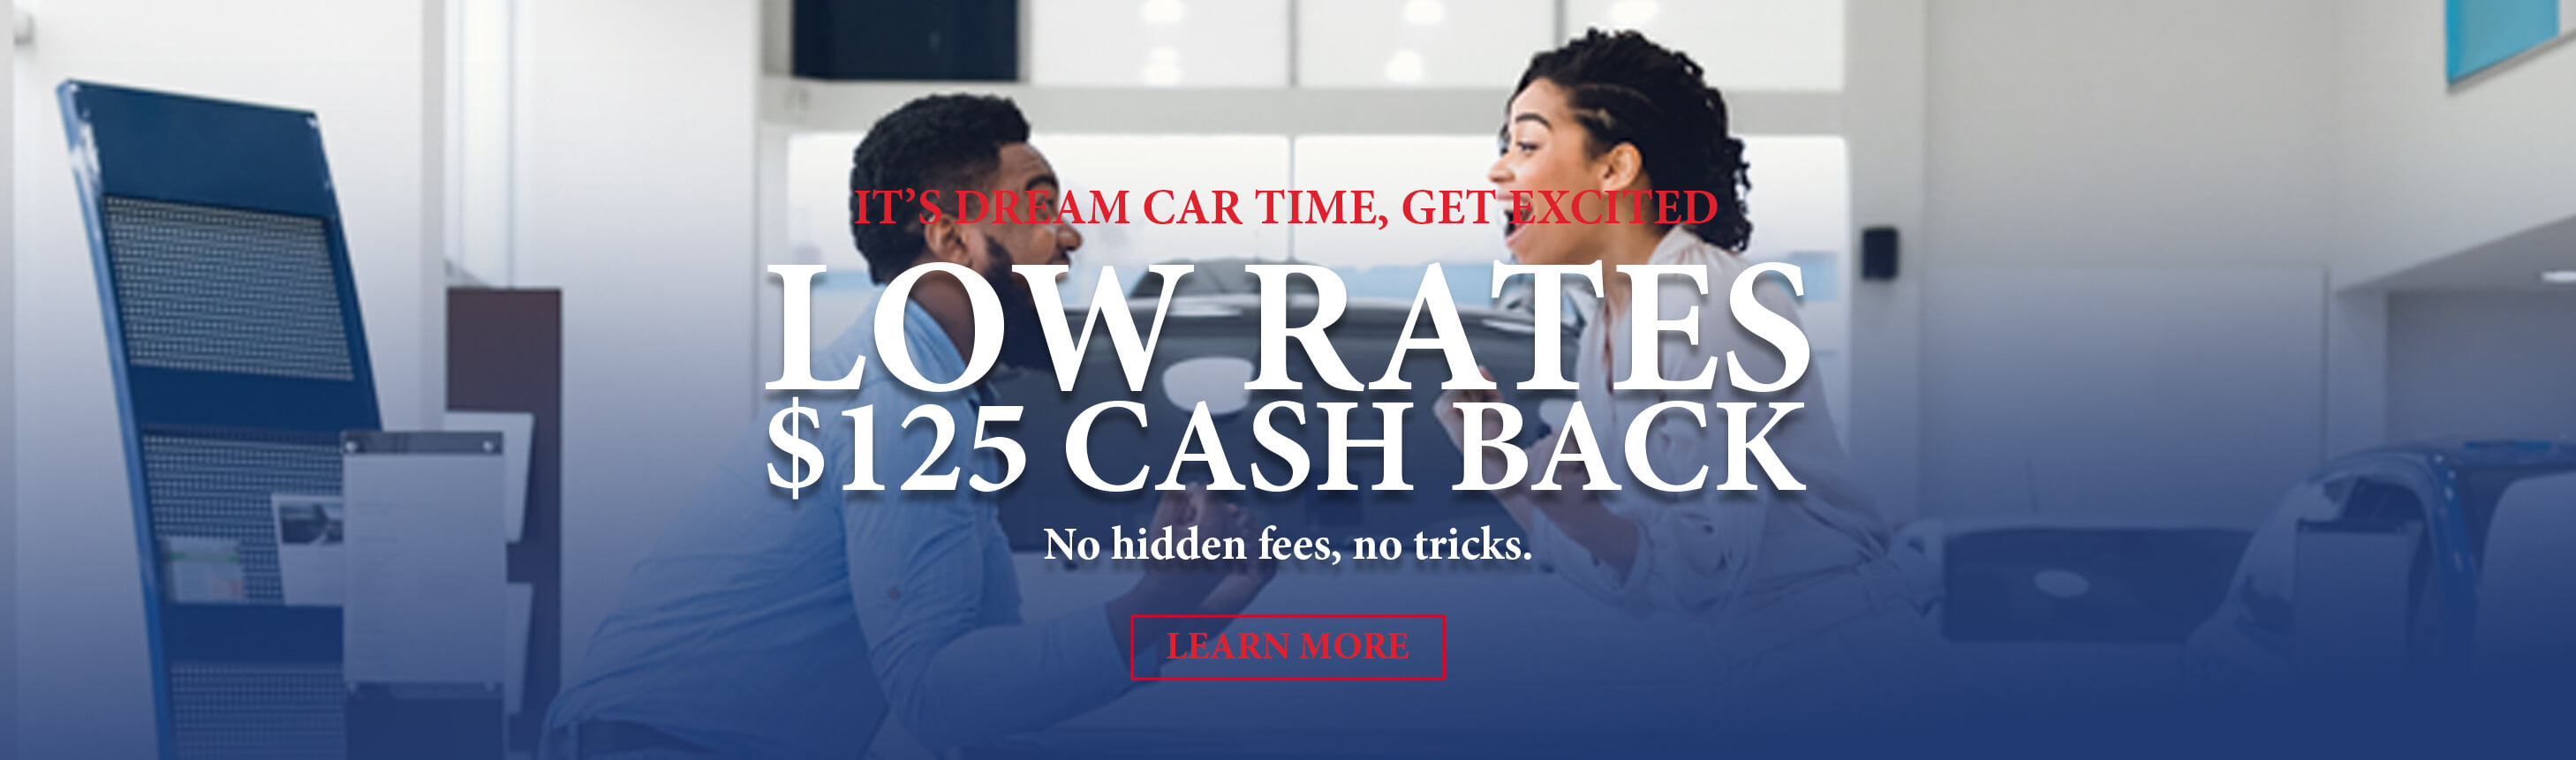 *Promotion applies to all new auto loans or vehicles currently finances with another financial institution. Minimum new money $10,000 to qualify for $125 cash back. Based on credit approval. See credit union for details. Promotion subject to change or cancellation with no prior notice. Offer valid October 18, 2021 through November 20th, 2021.